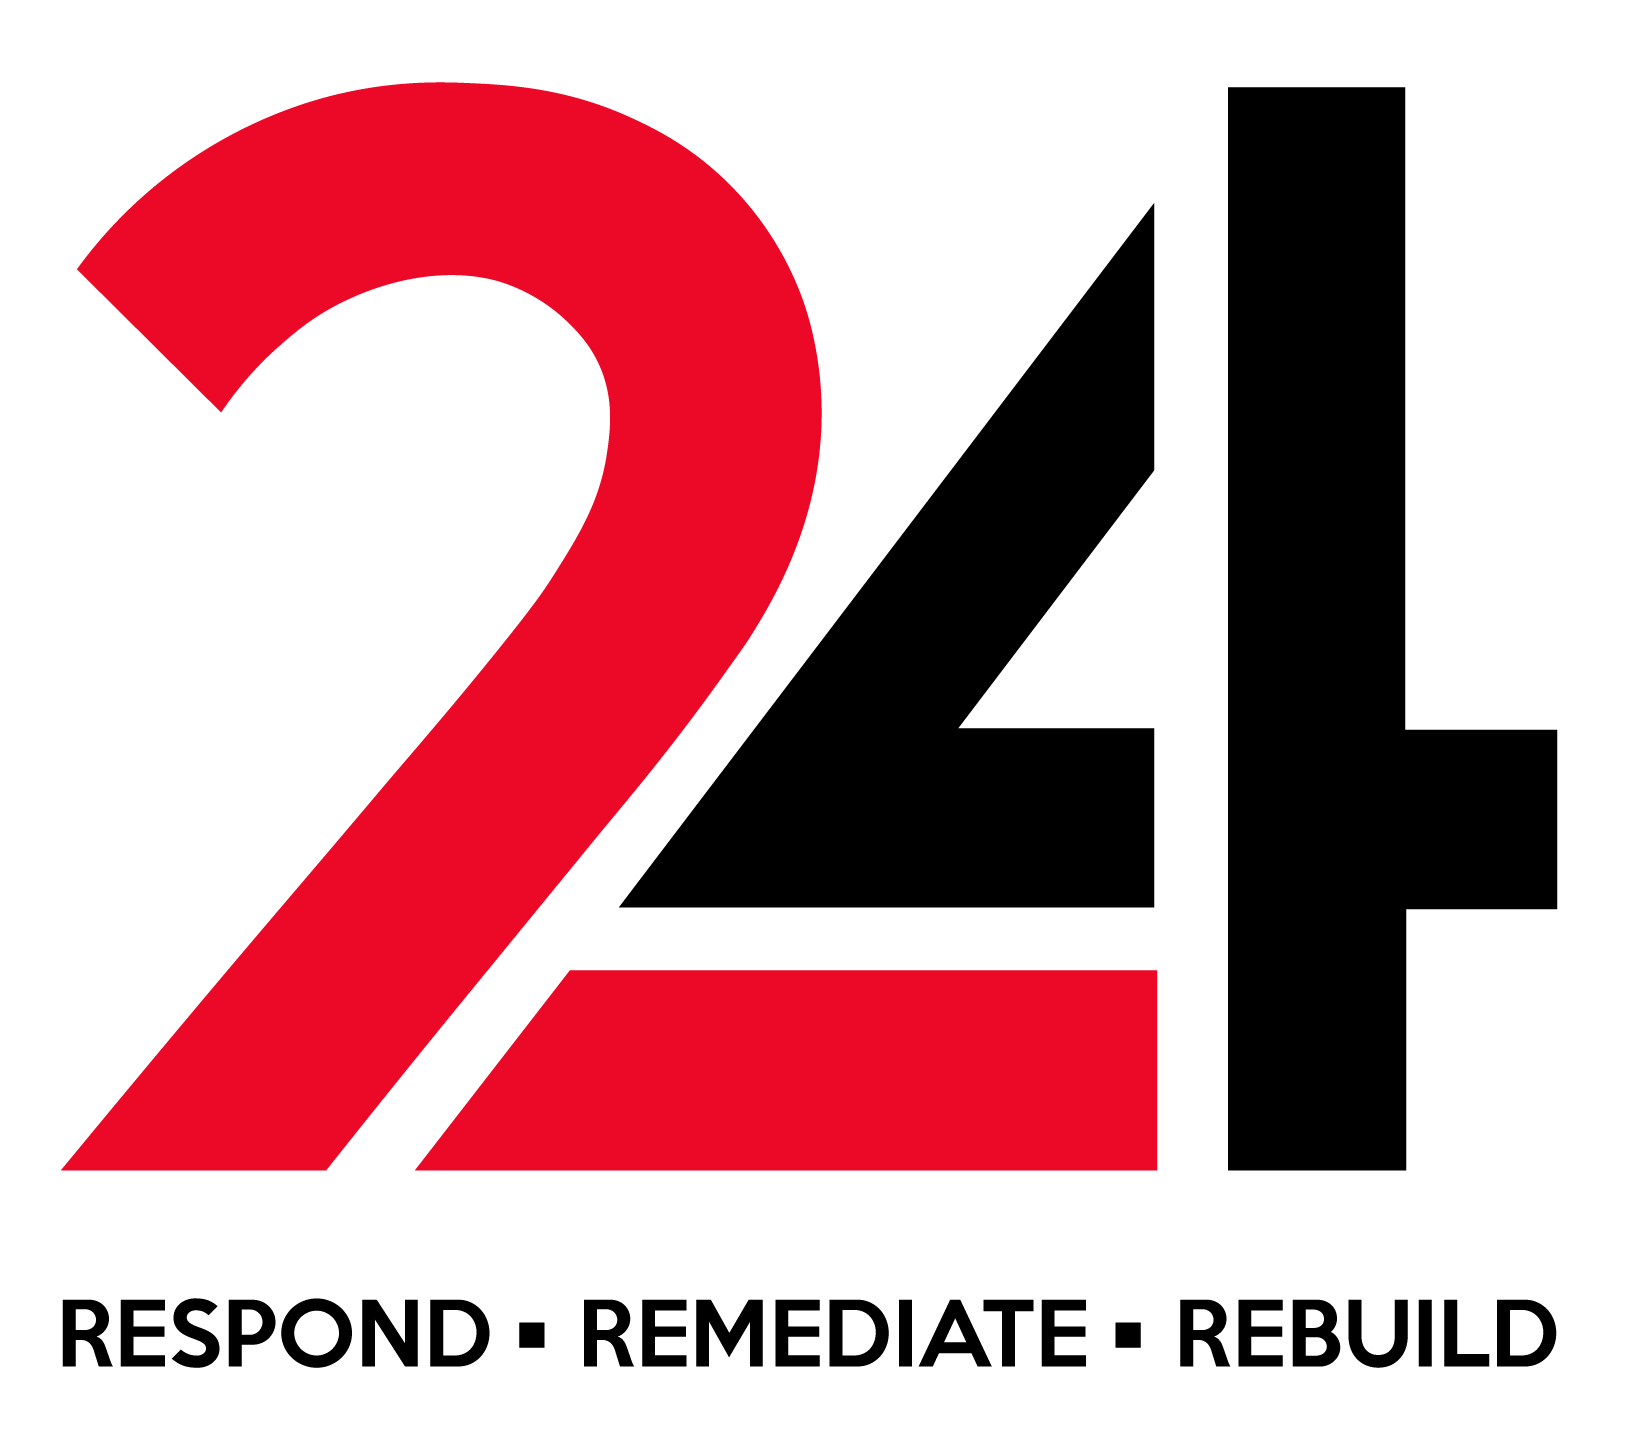 24logovector_tagline_compact (002).png